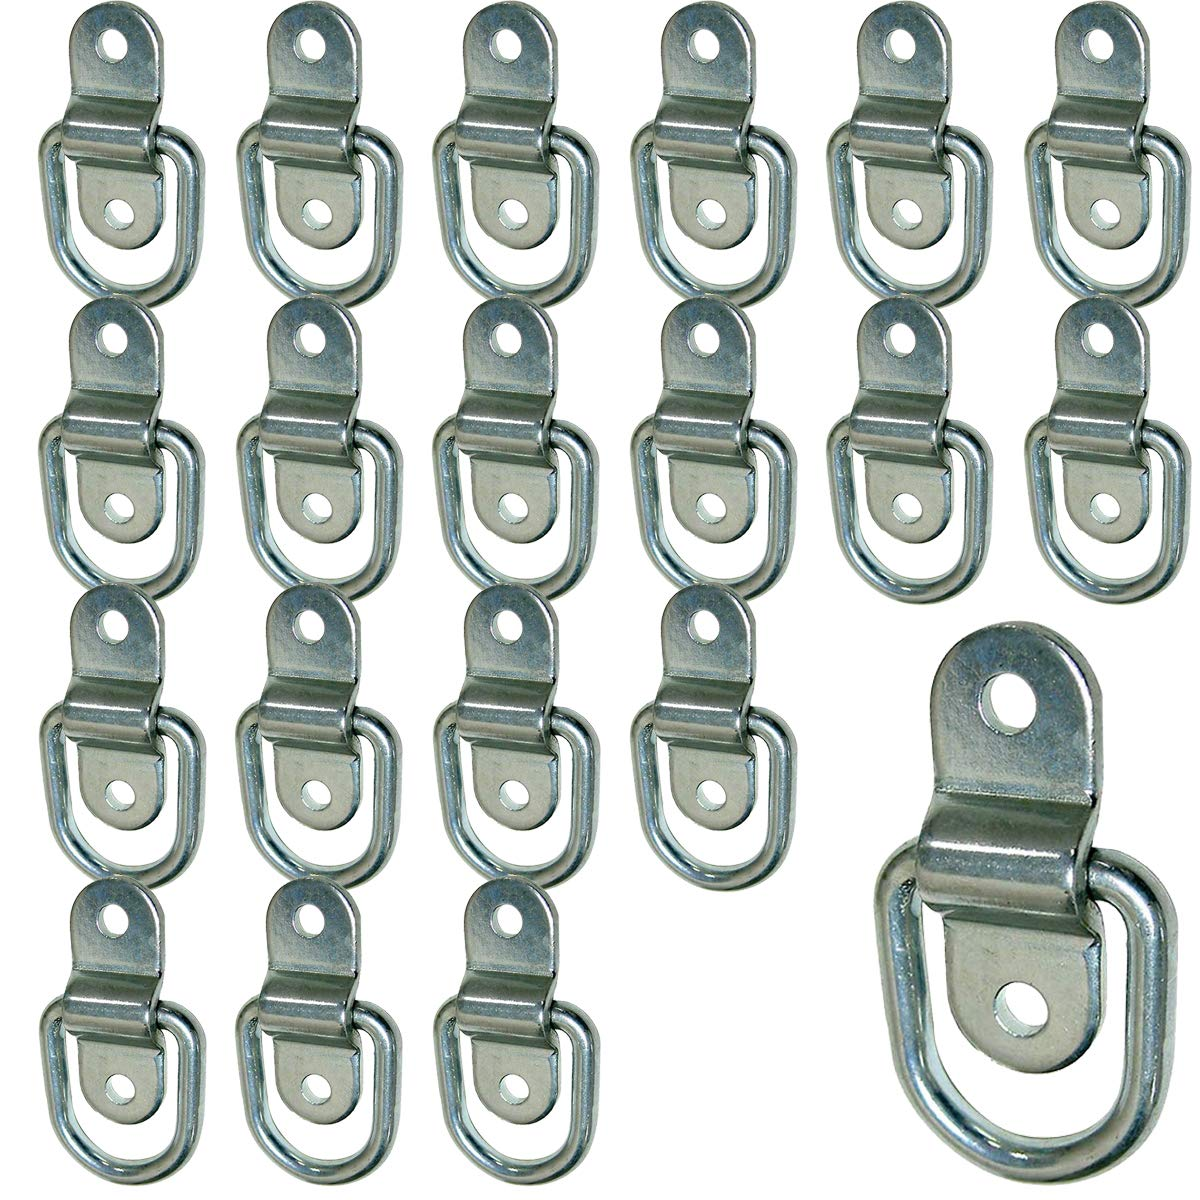 Stainless Steel D-ring Tiedowns 3,500 lb. Capacity Tie Down Anchor - 20 Pack